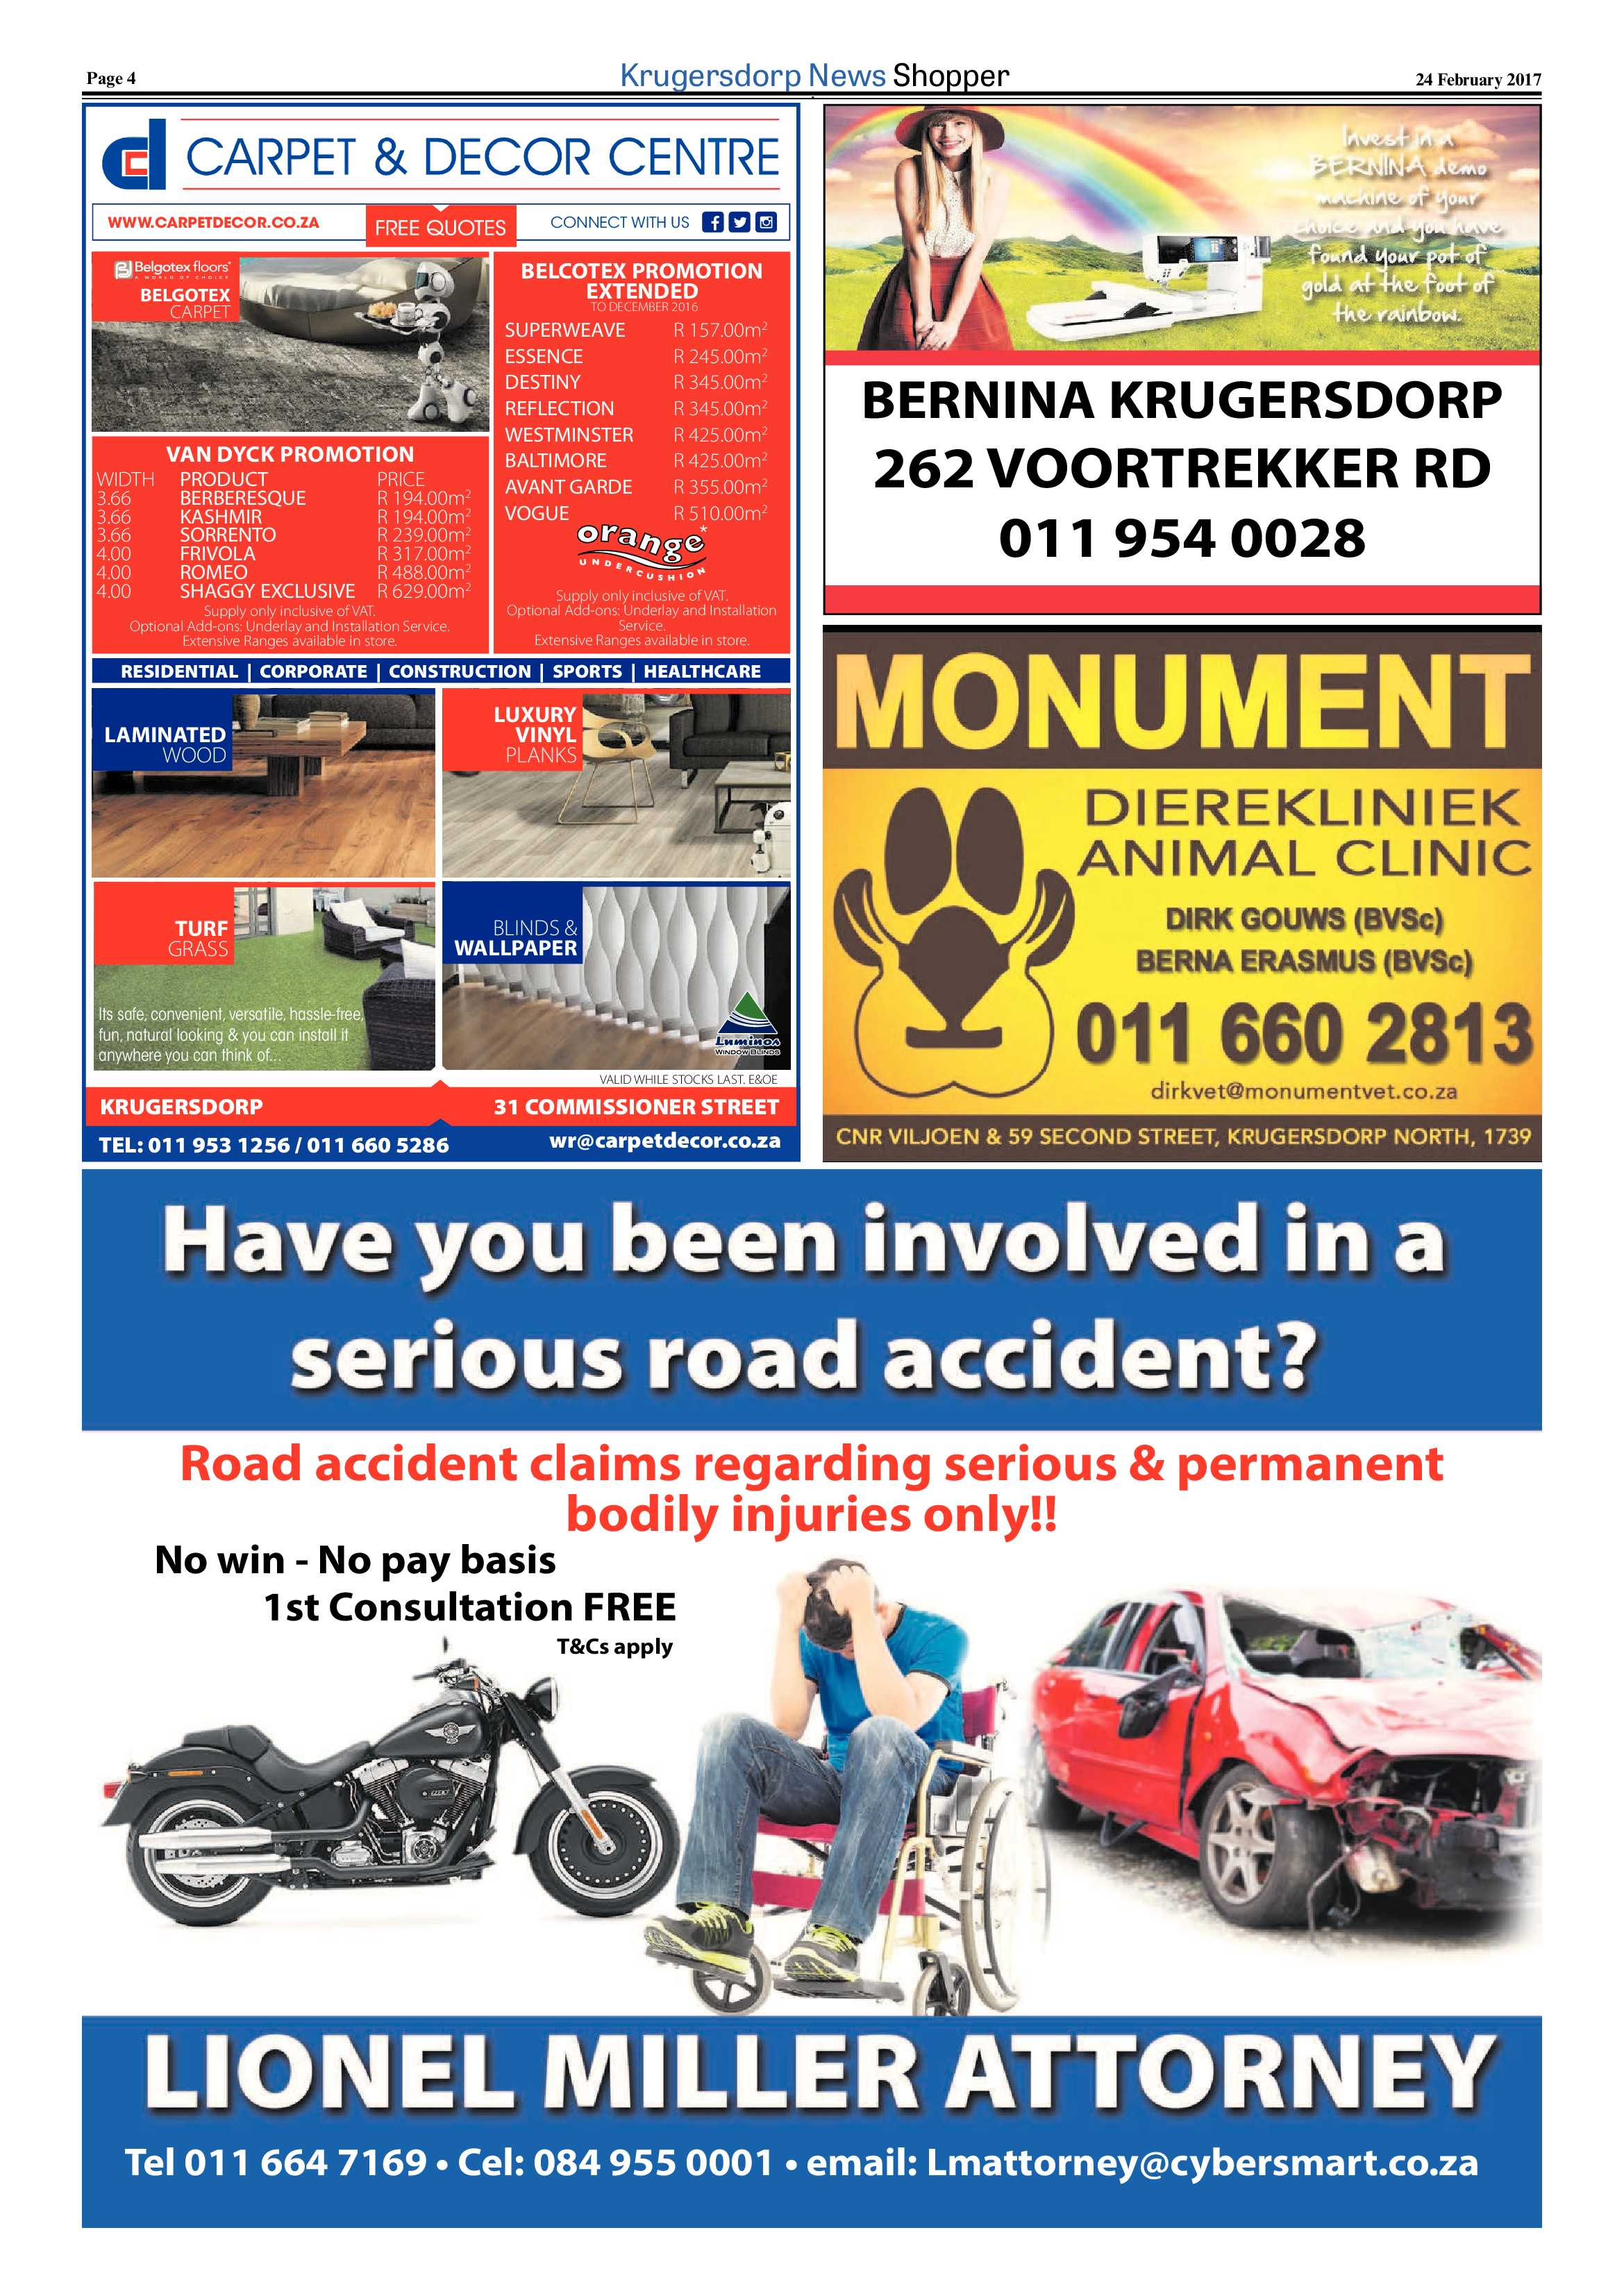 krugersdorp-news-shopper-february-2017-epapers-page-4